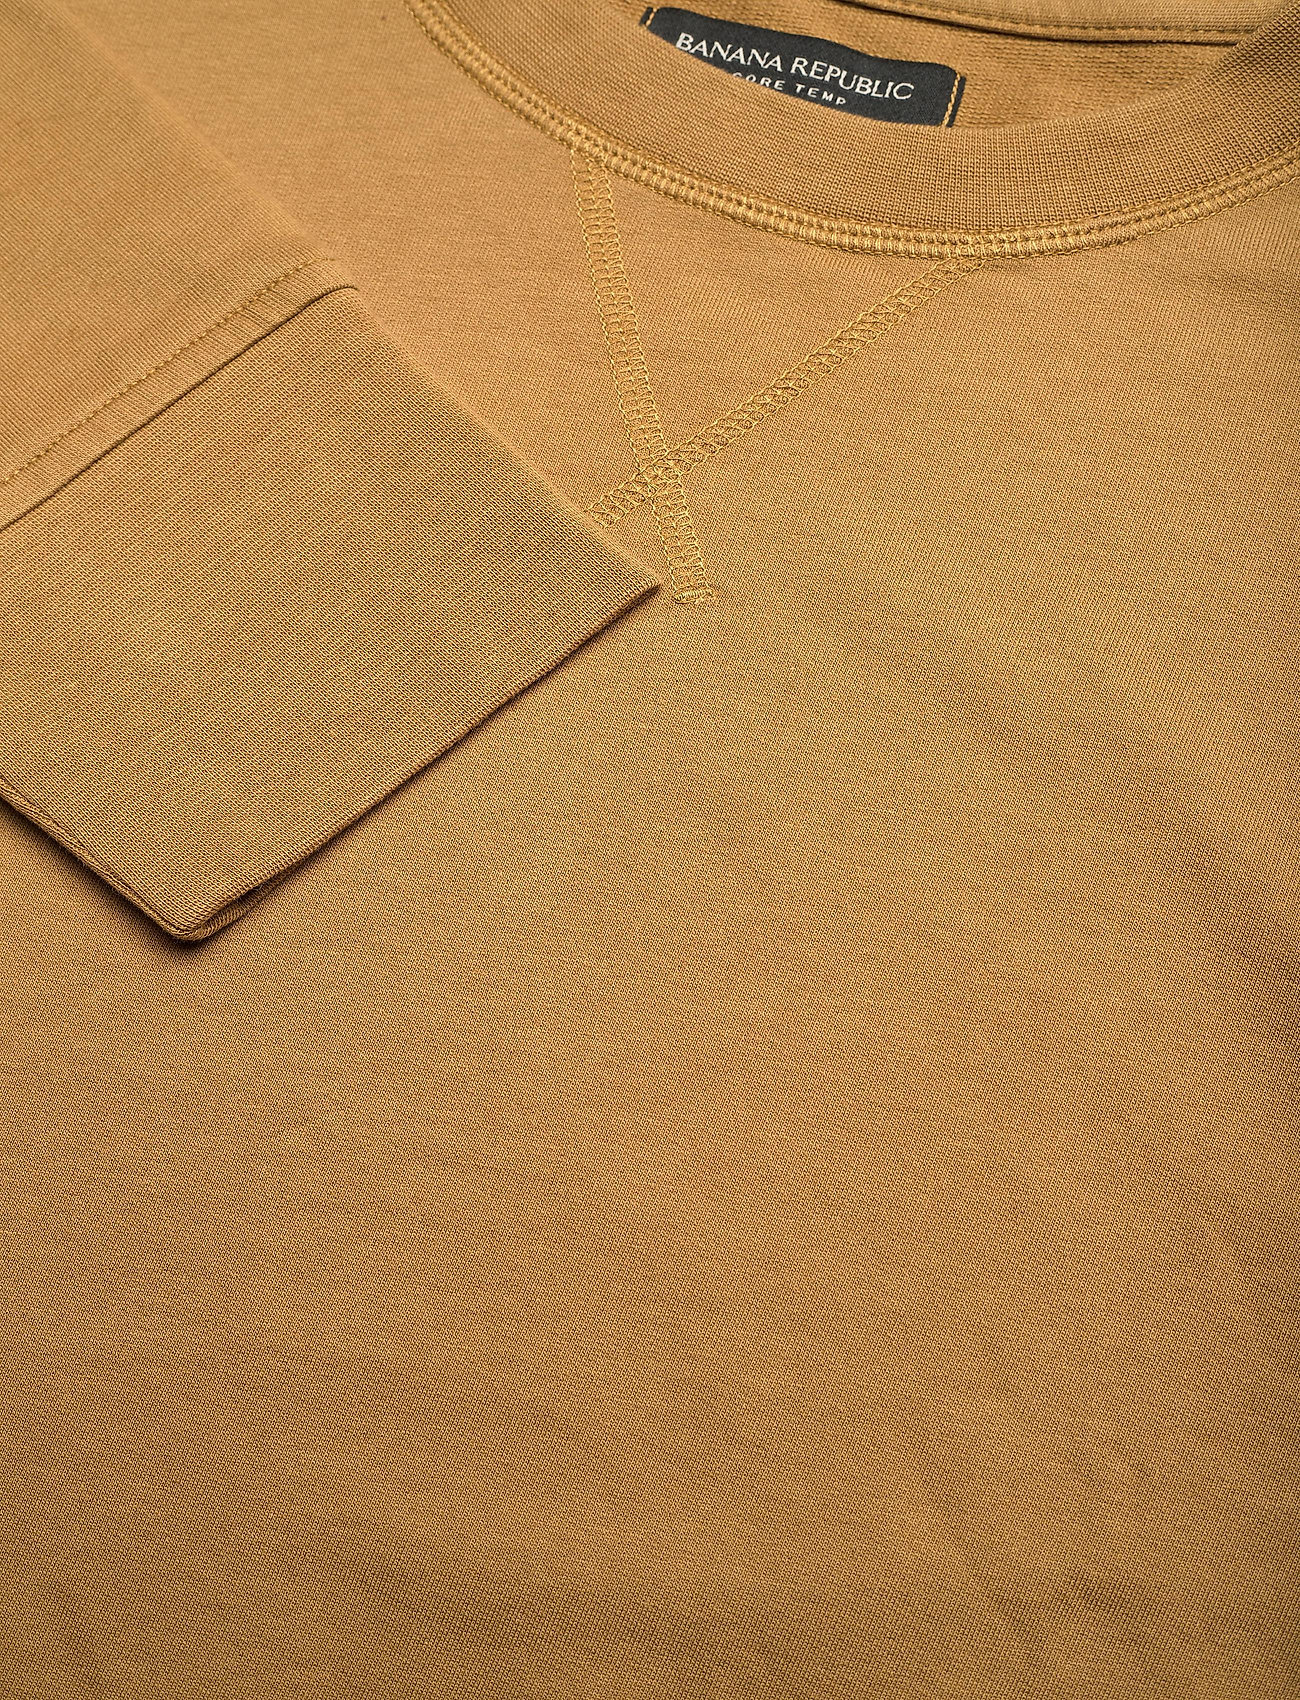 Core Temp Terry Sweatshirt (Sahara Tan) (39.75 €) - Banana Republic O28W2